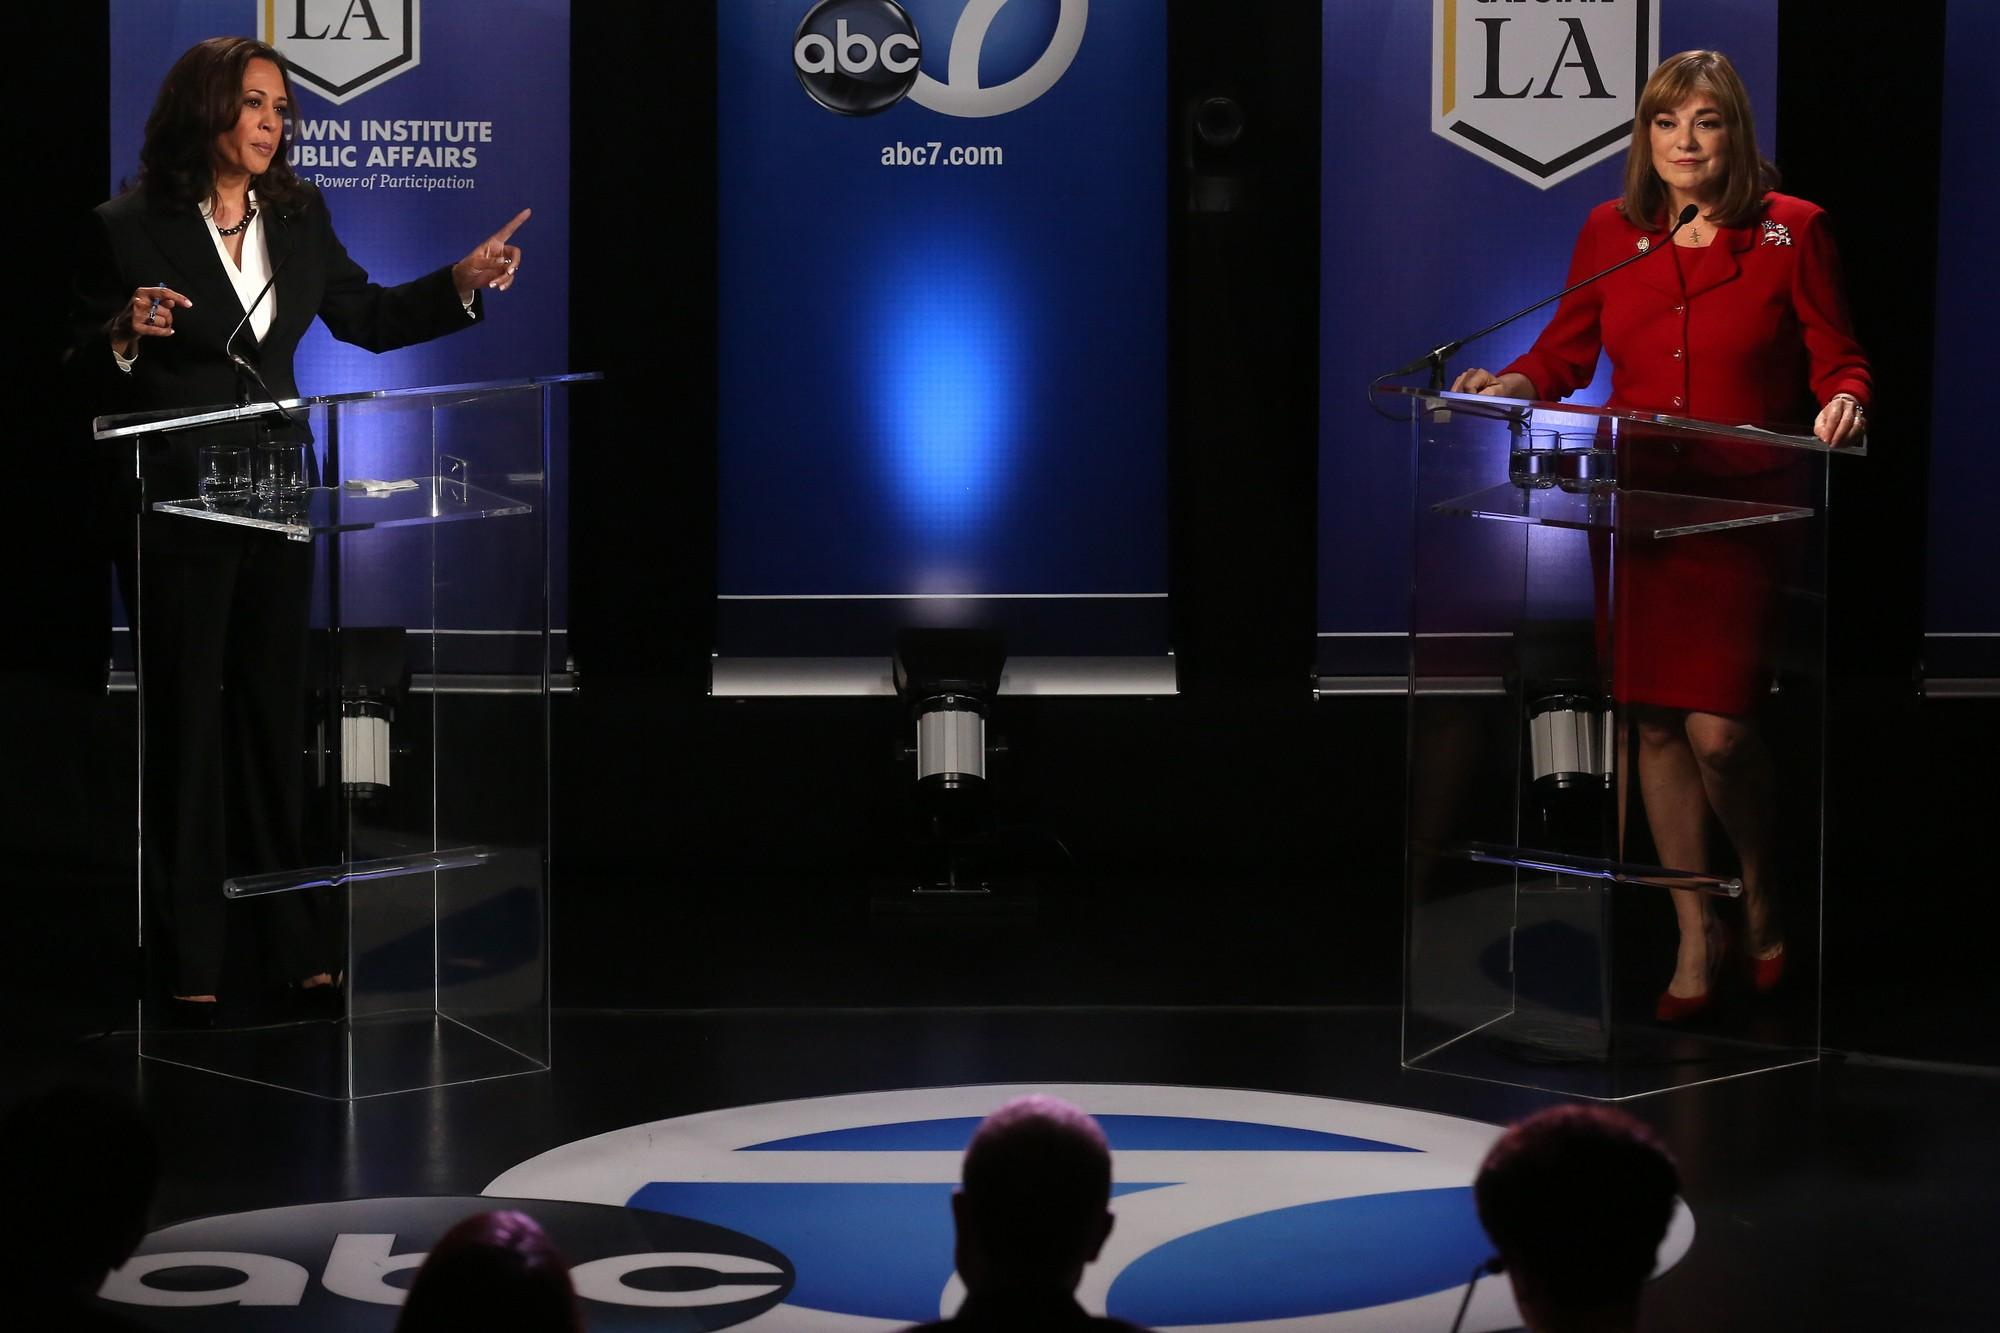 U.S. Senate candidate Kamala Harris, left, points a finger toward fellow candidate Loretta Sanchez during a debate